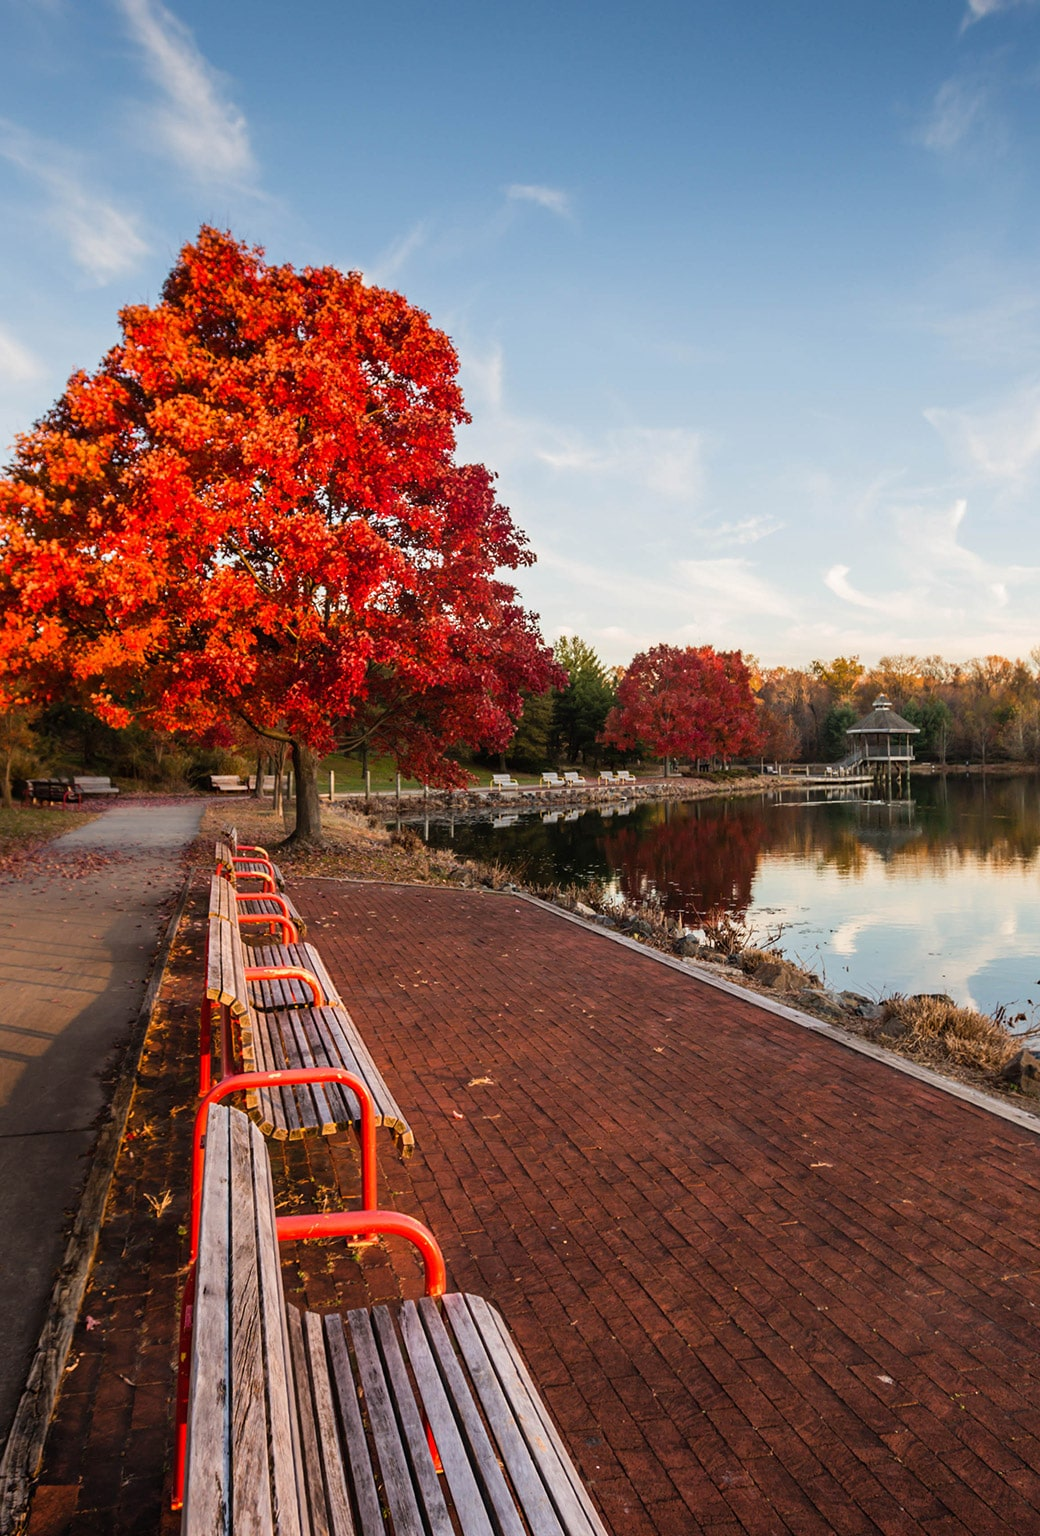 Fall Wallpaper For My Phone Iphone Wallpapers Of Hdr Amp Landscape Photography